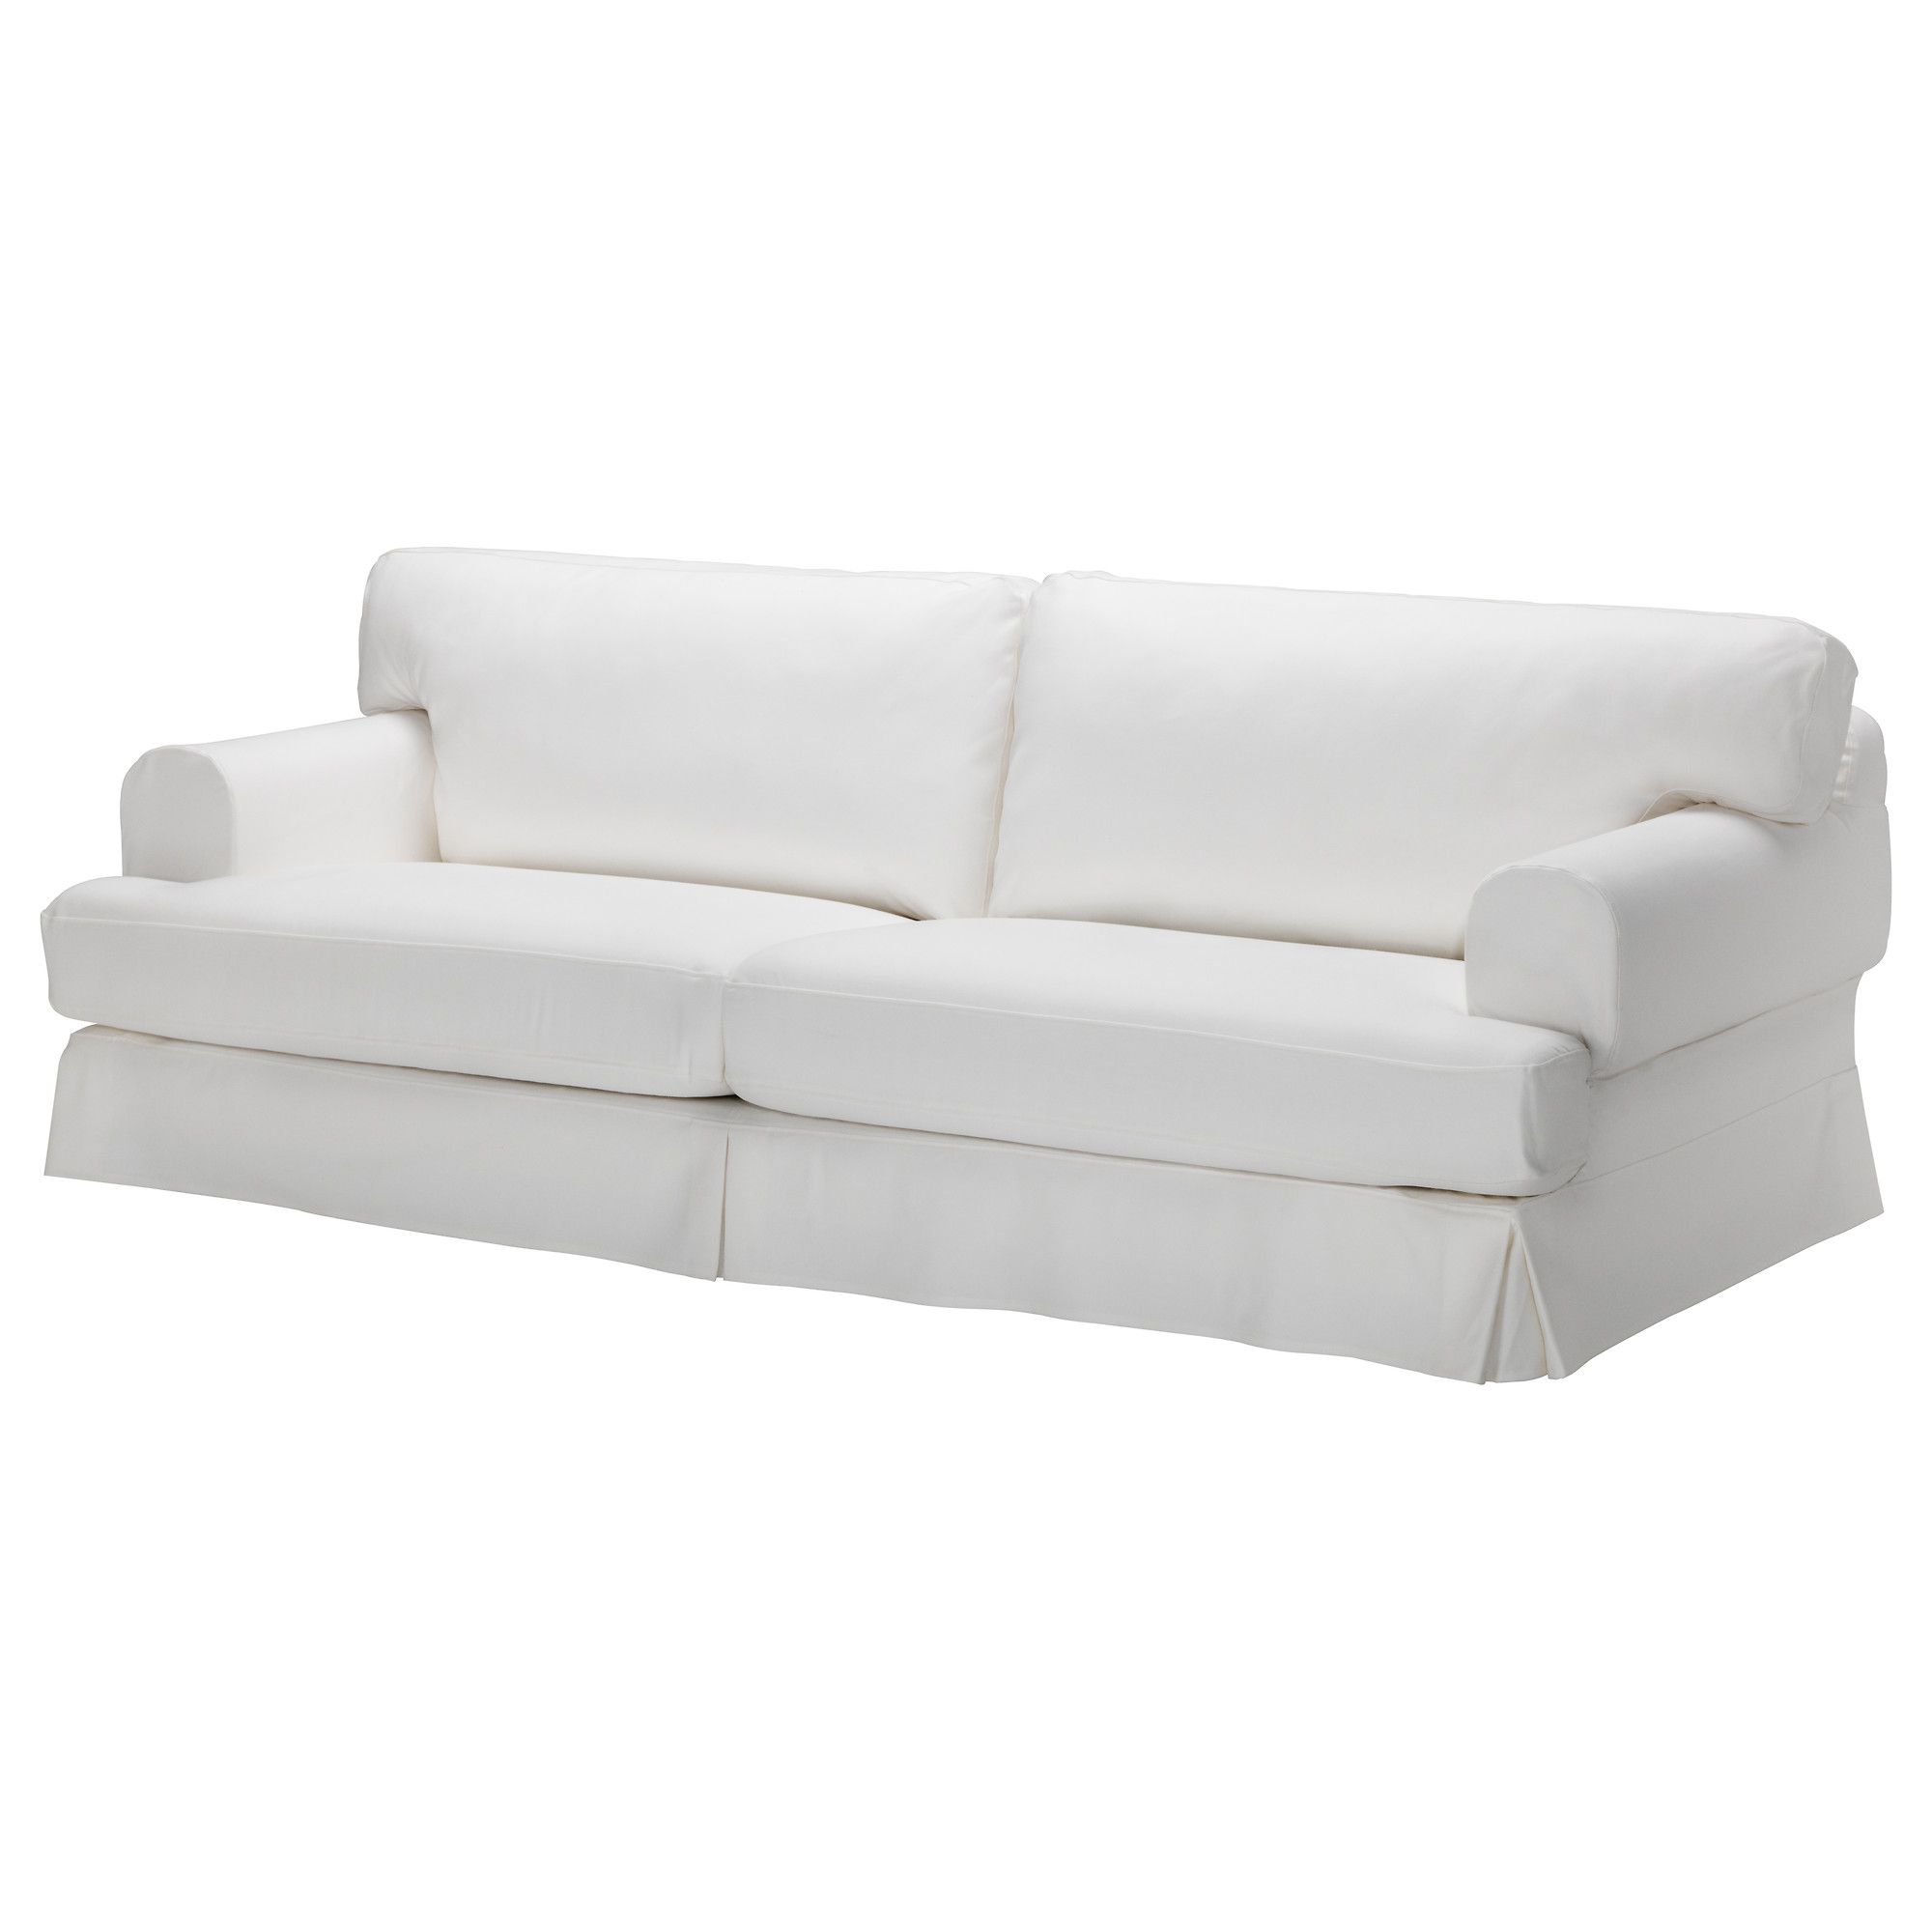 HOV…S Sofa Gobo white IKEA Apartment house